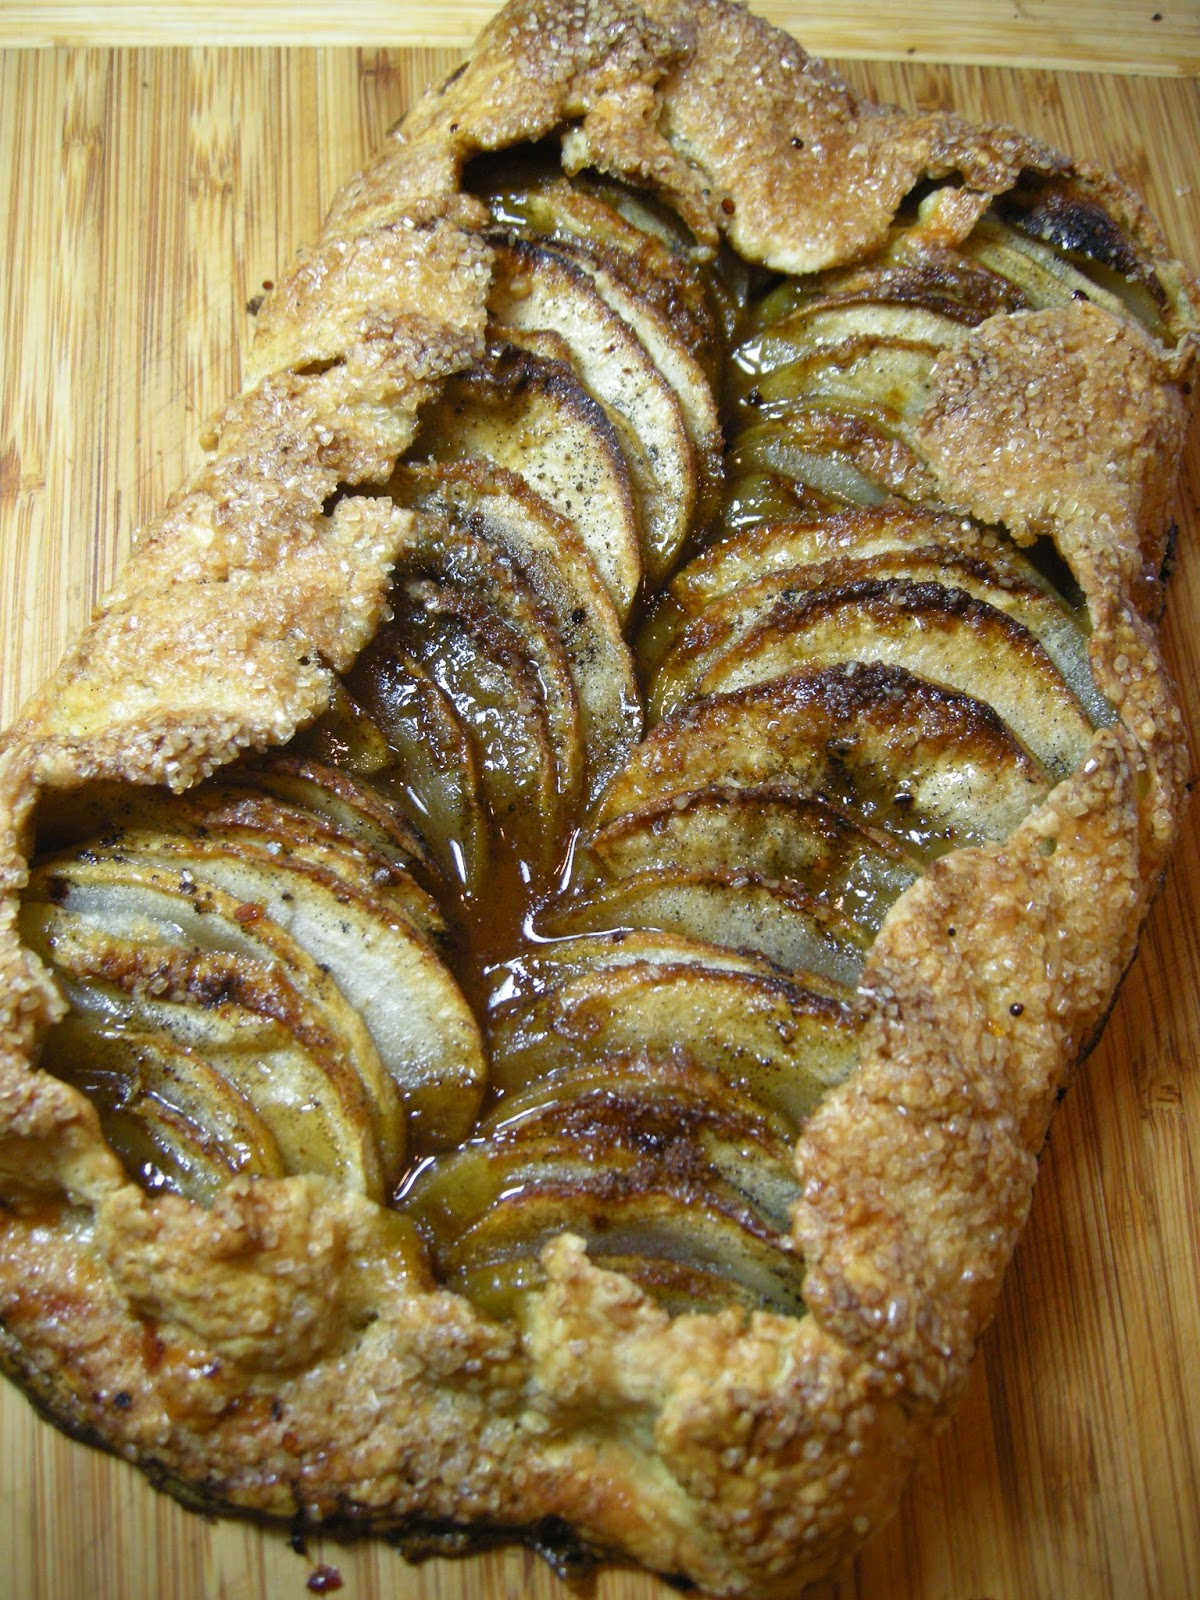 apple dee doo dah!  rosie makes an apple galette.